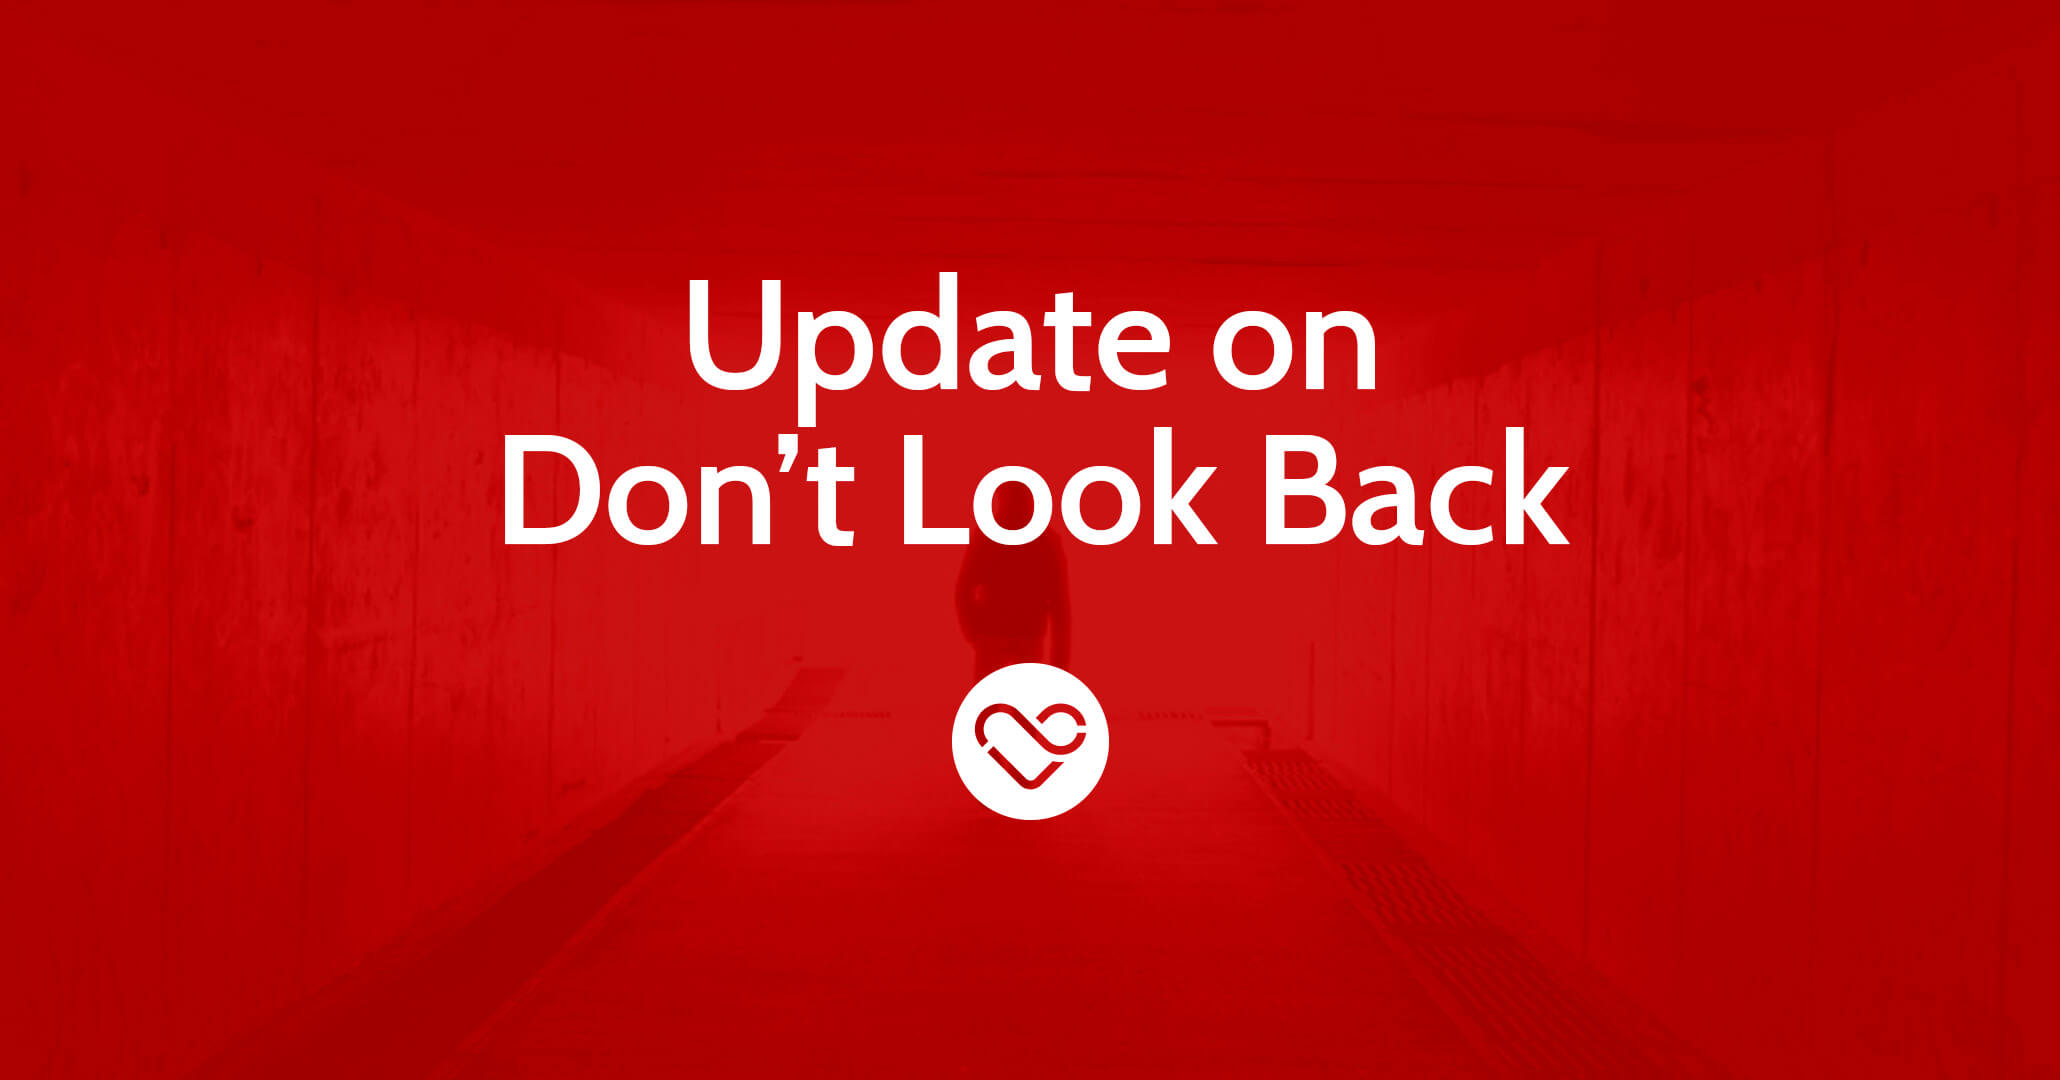 Update on Don't Look Back